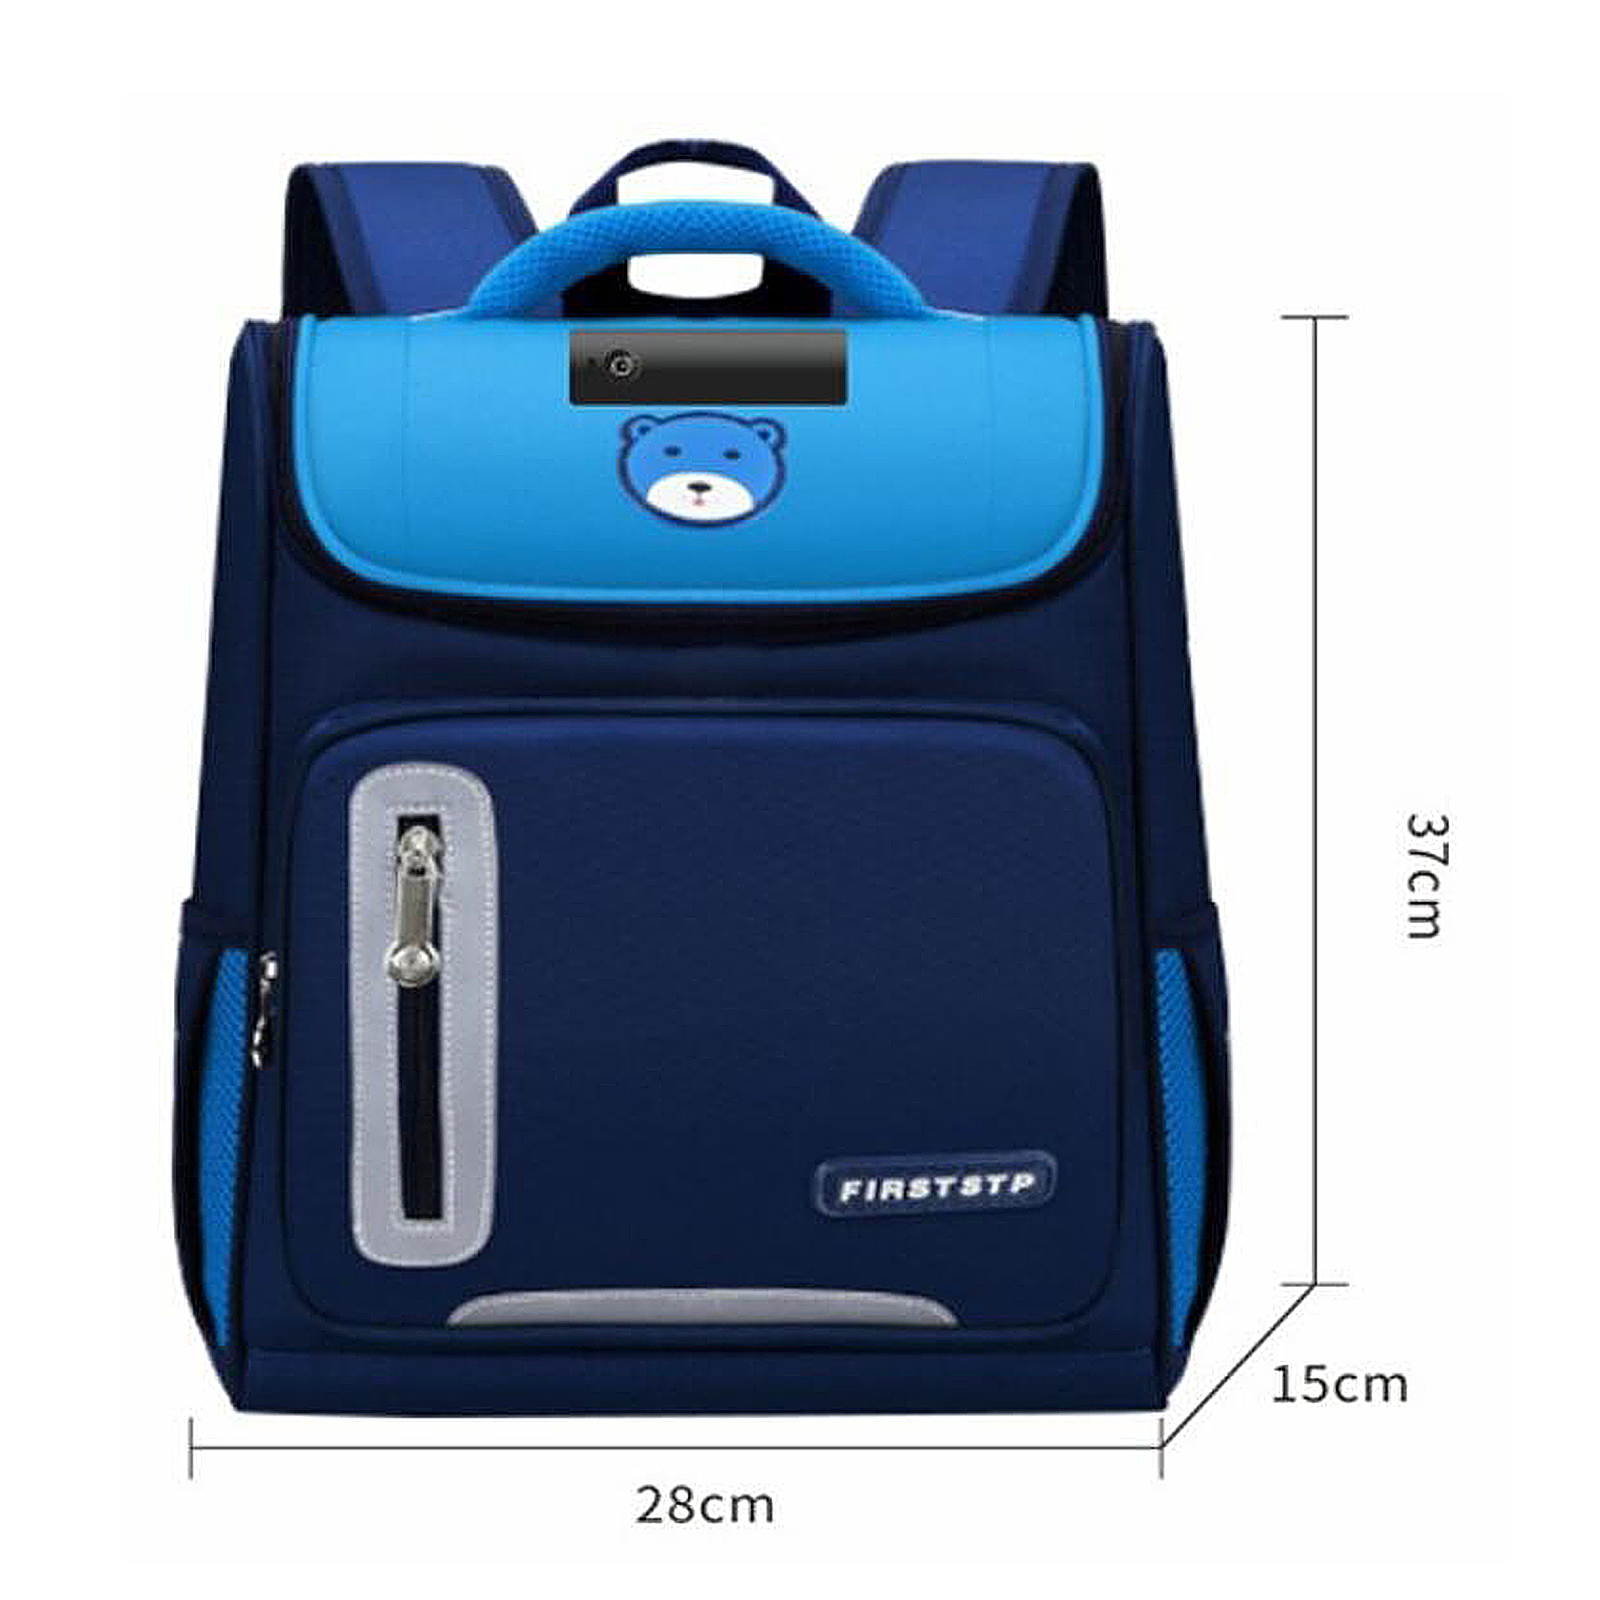 UV Sterilizer Bag, UV Light Sanitizer Bag, Portable Disinfection Student Backpack for Books, Pencil box, Vacuum cup, Keys